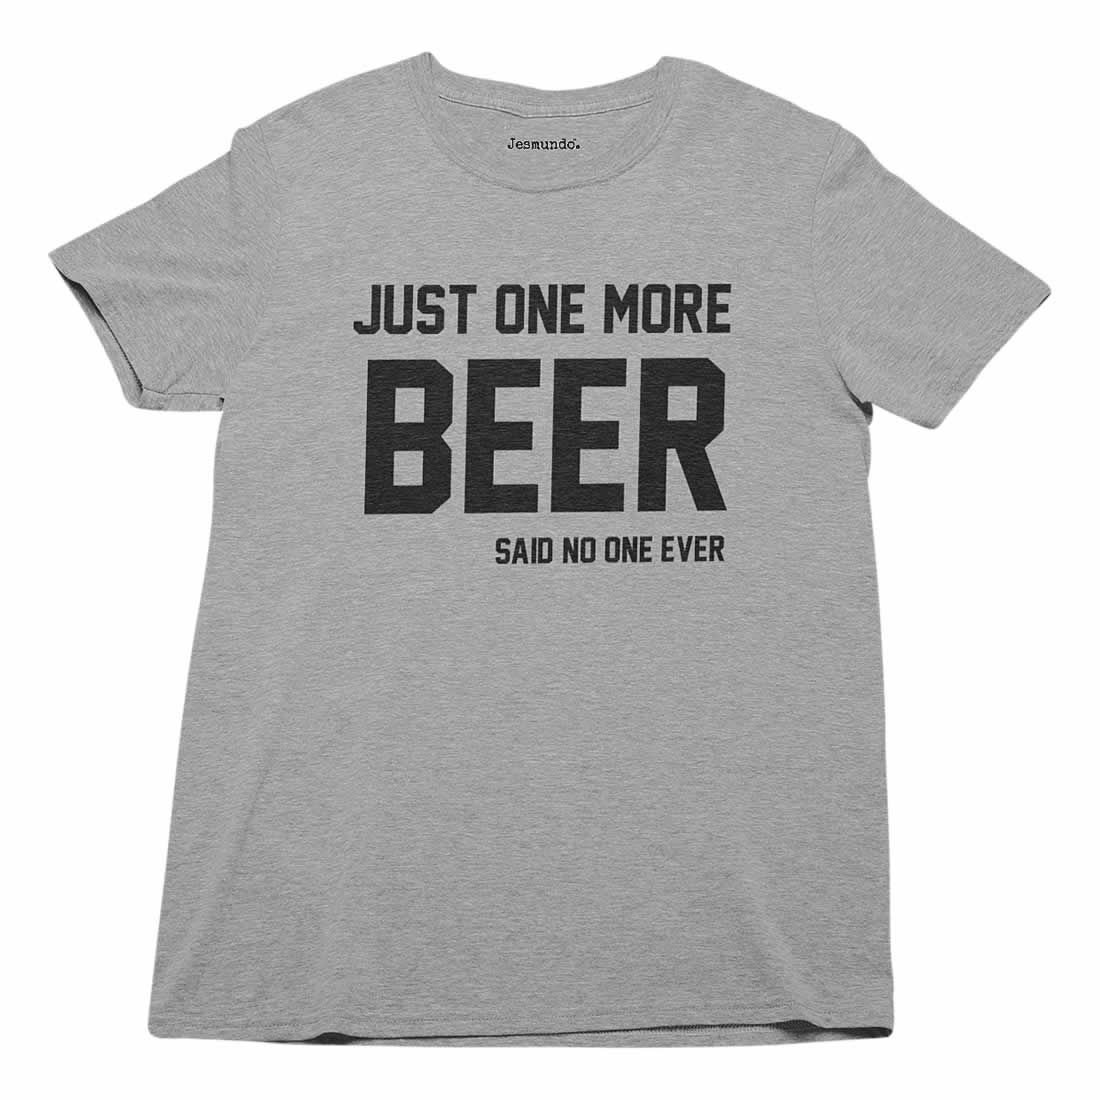 Just One More Beer Said No One Ever T-Shirt